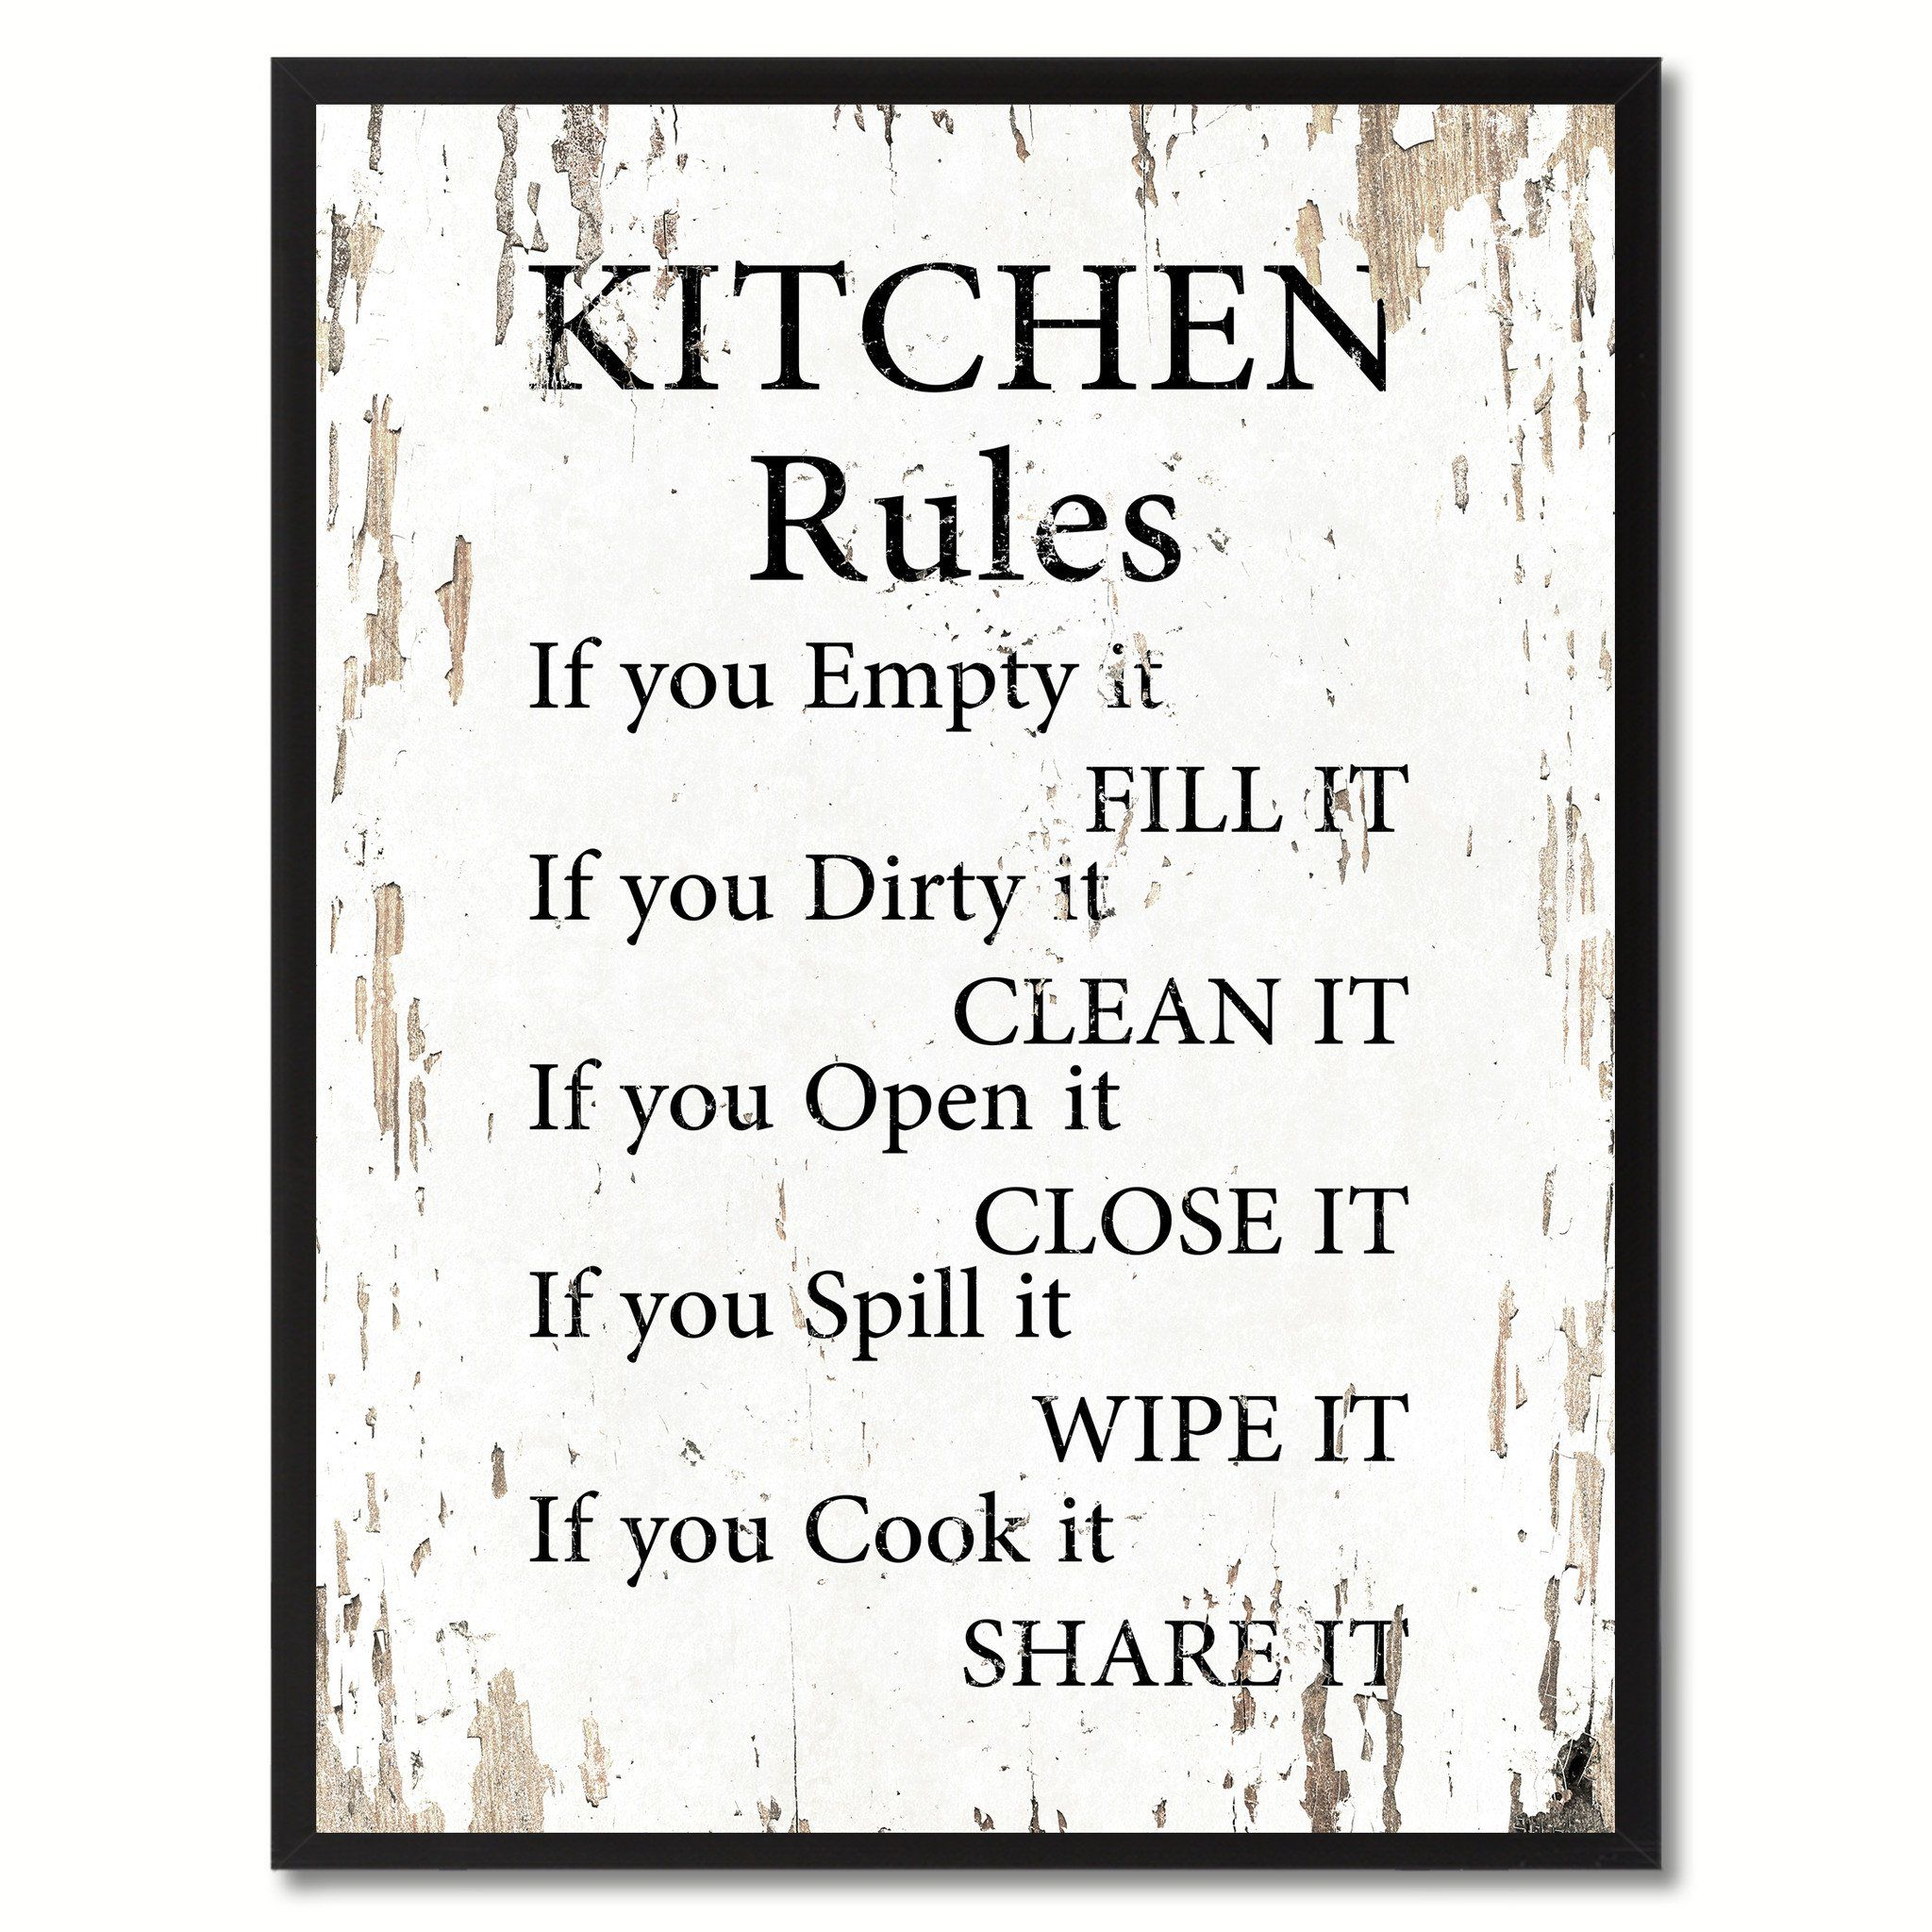 Kitchen Rules Saying Canvas Print, Black Picture Frame